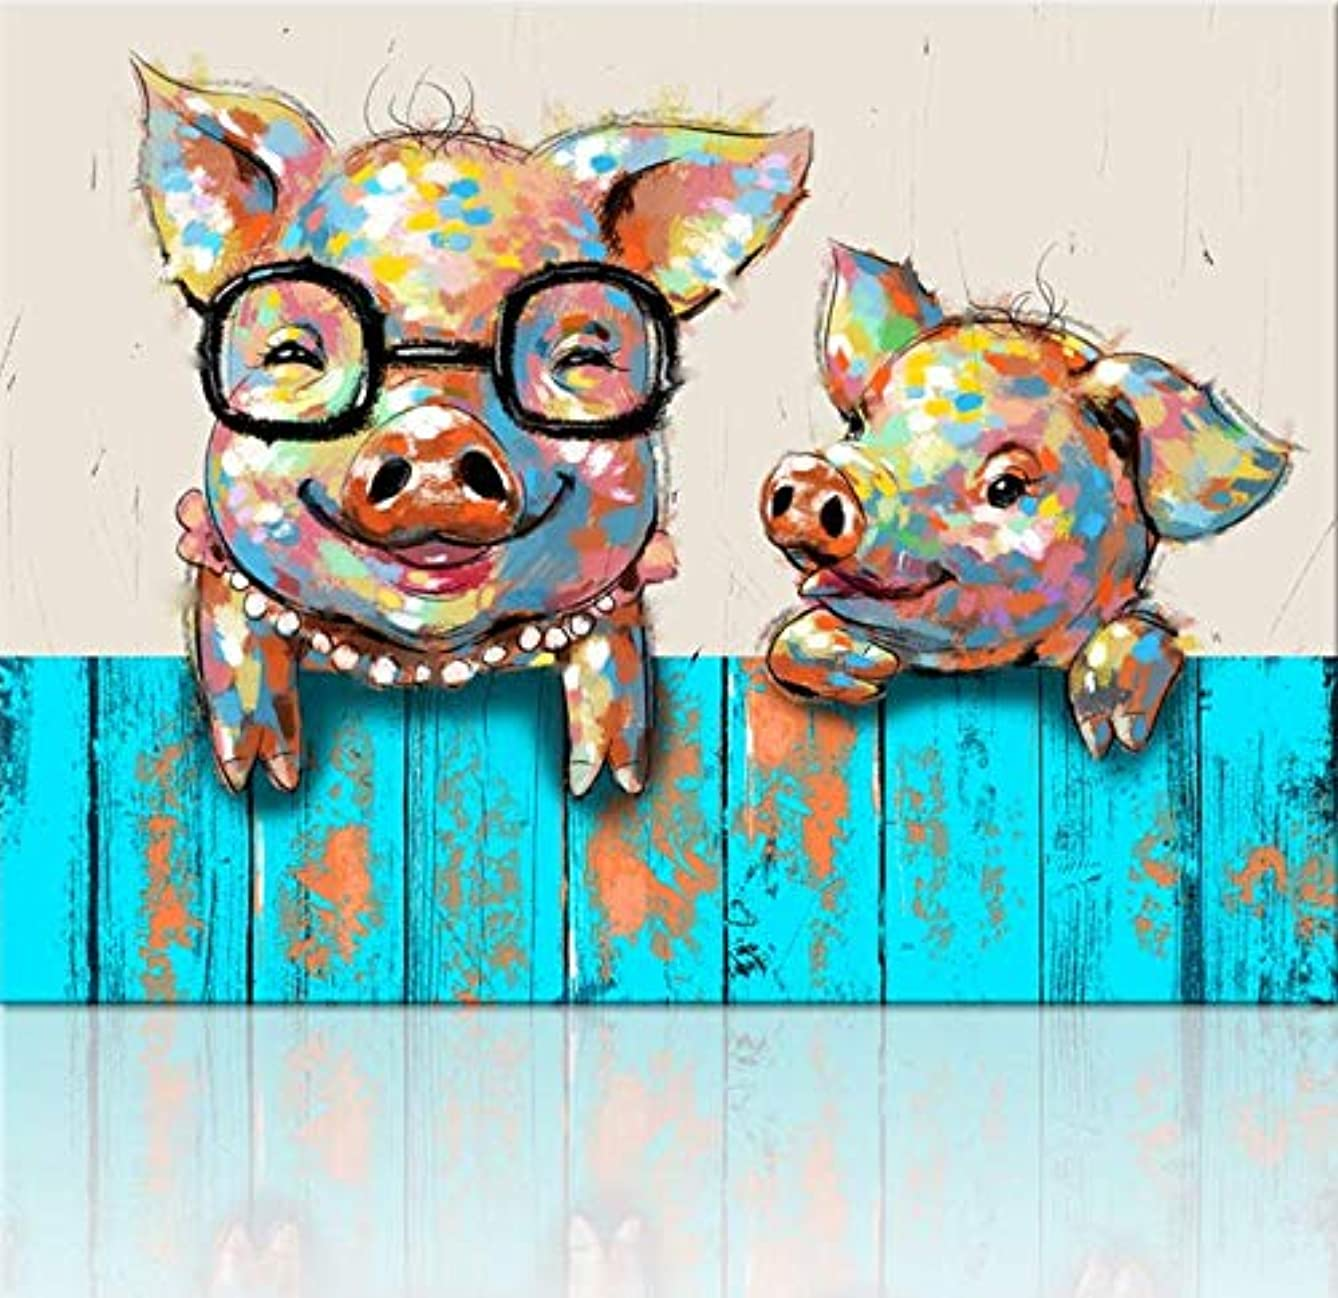 LongSing 5d Diamond Painting Kits for Adults Kids Pigs Full Drill Diamond dotz for Home Wall Decor 12x12inch(Canvas Size)